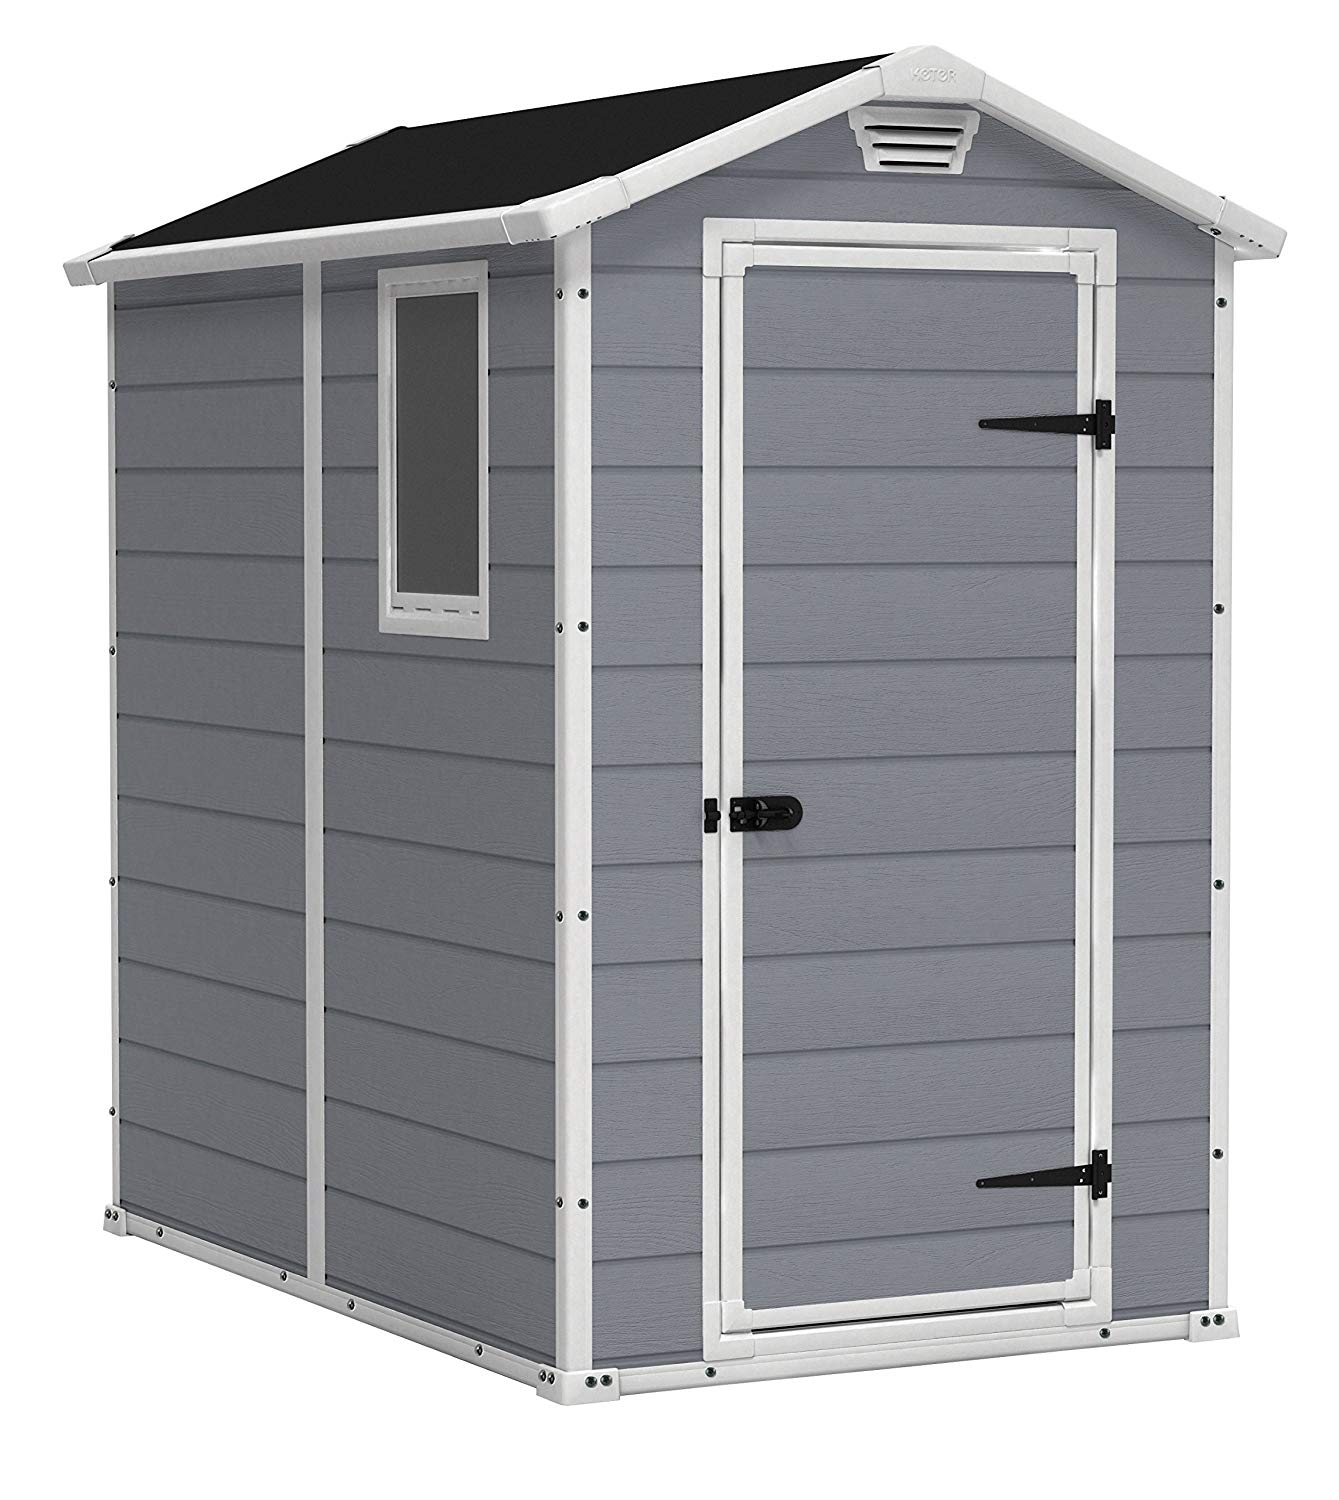 backyard storage sheds amazon.com : keter manor large 4 x 6 ft. resin outdoor backyard RRMPHKY